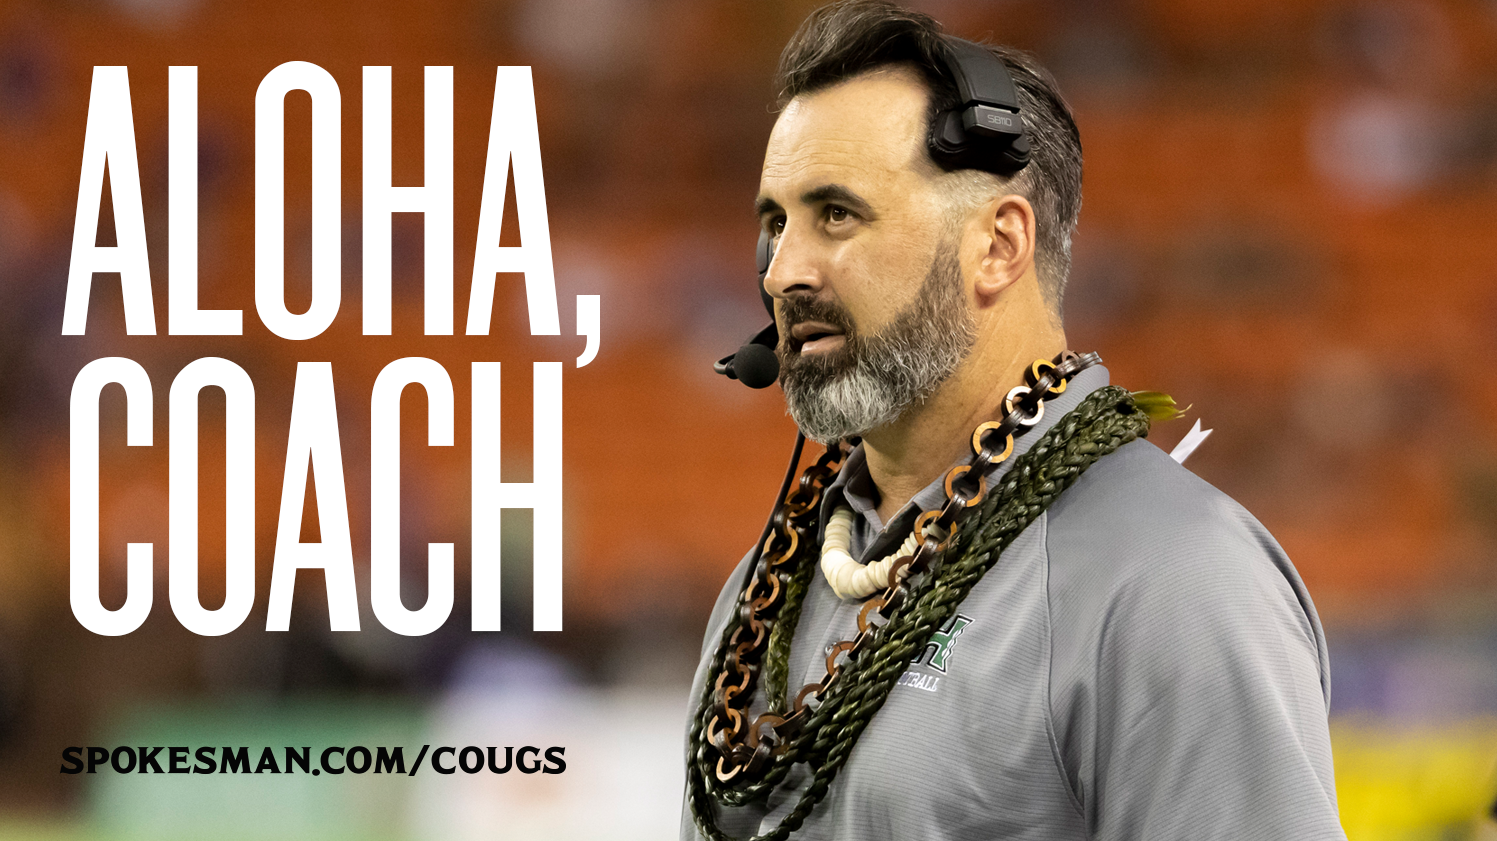 Coach Rolovich leaves UH for Washington St.